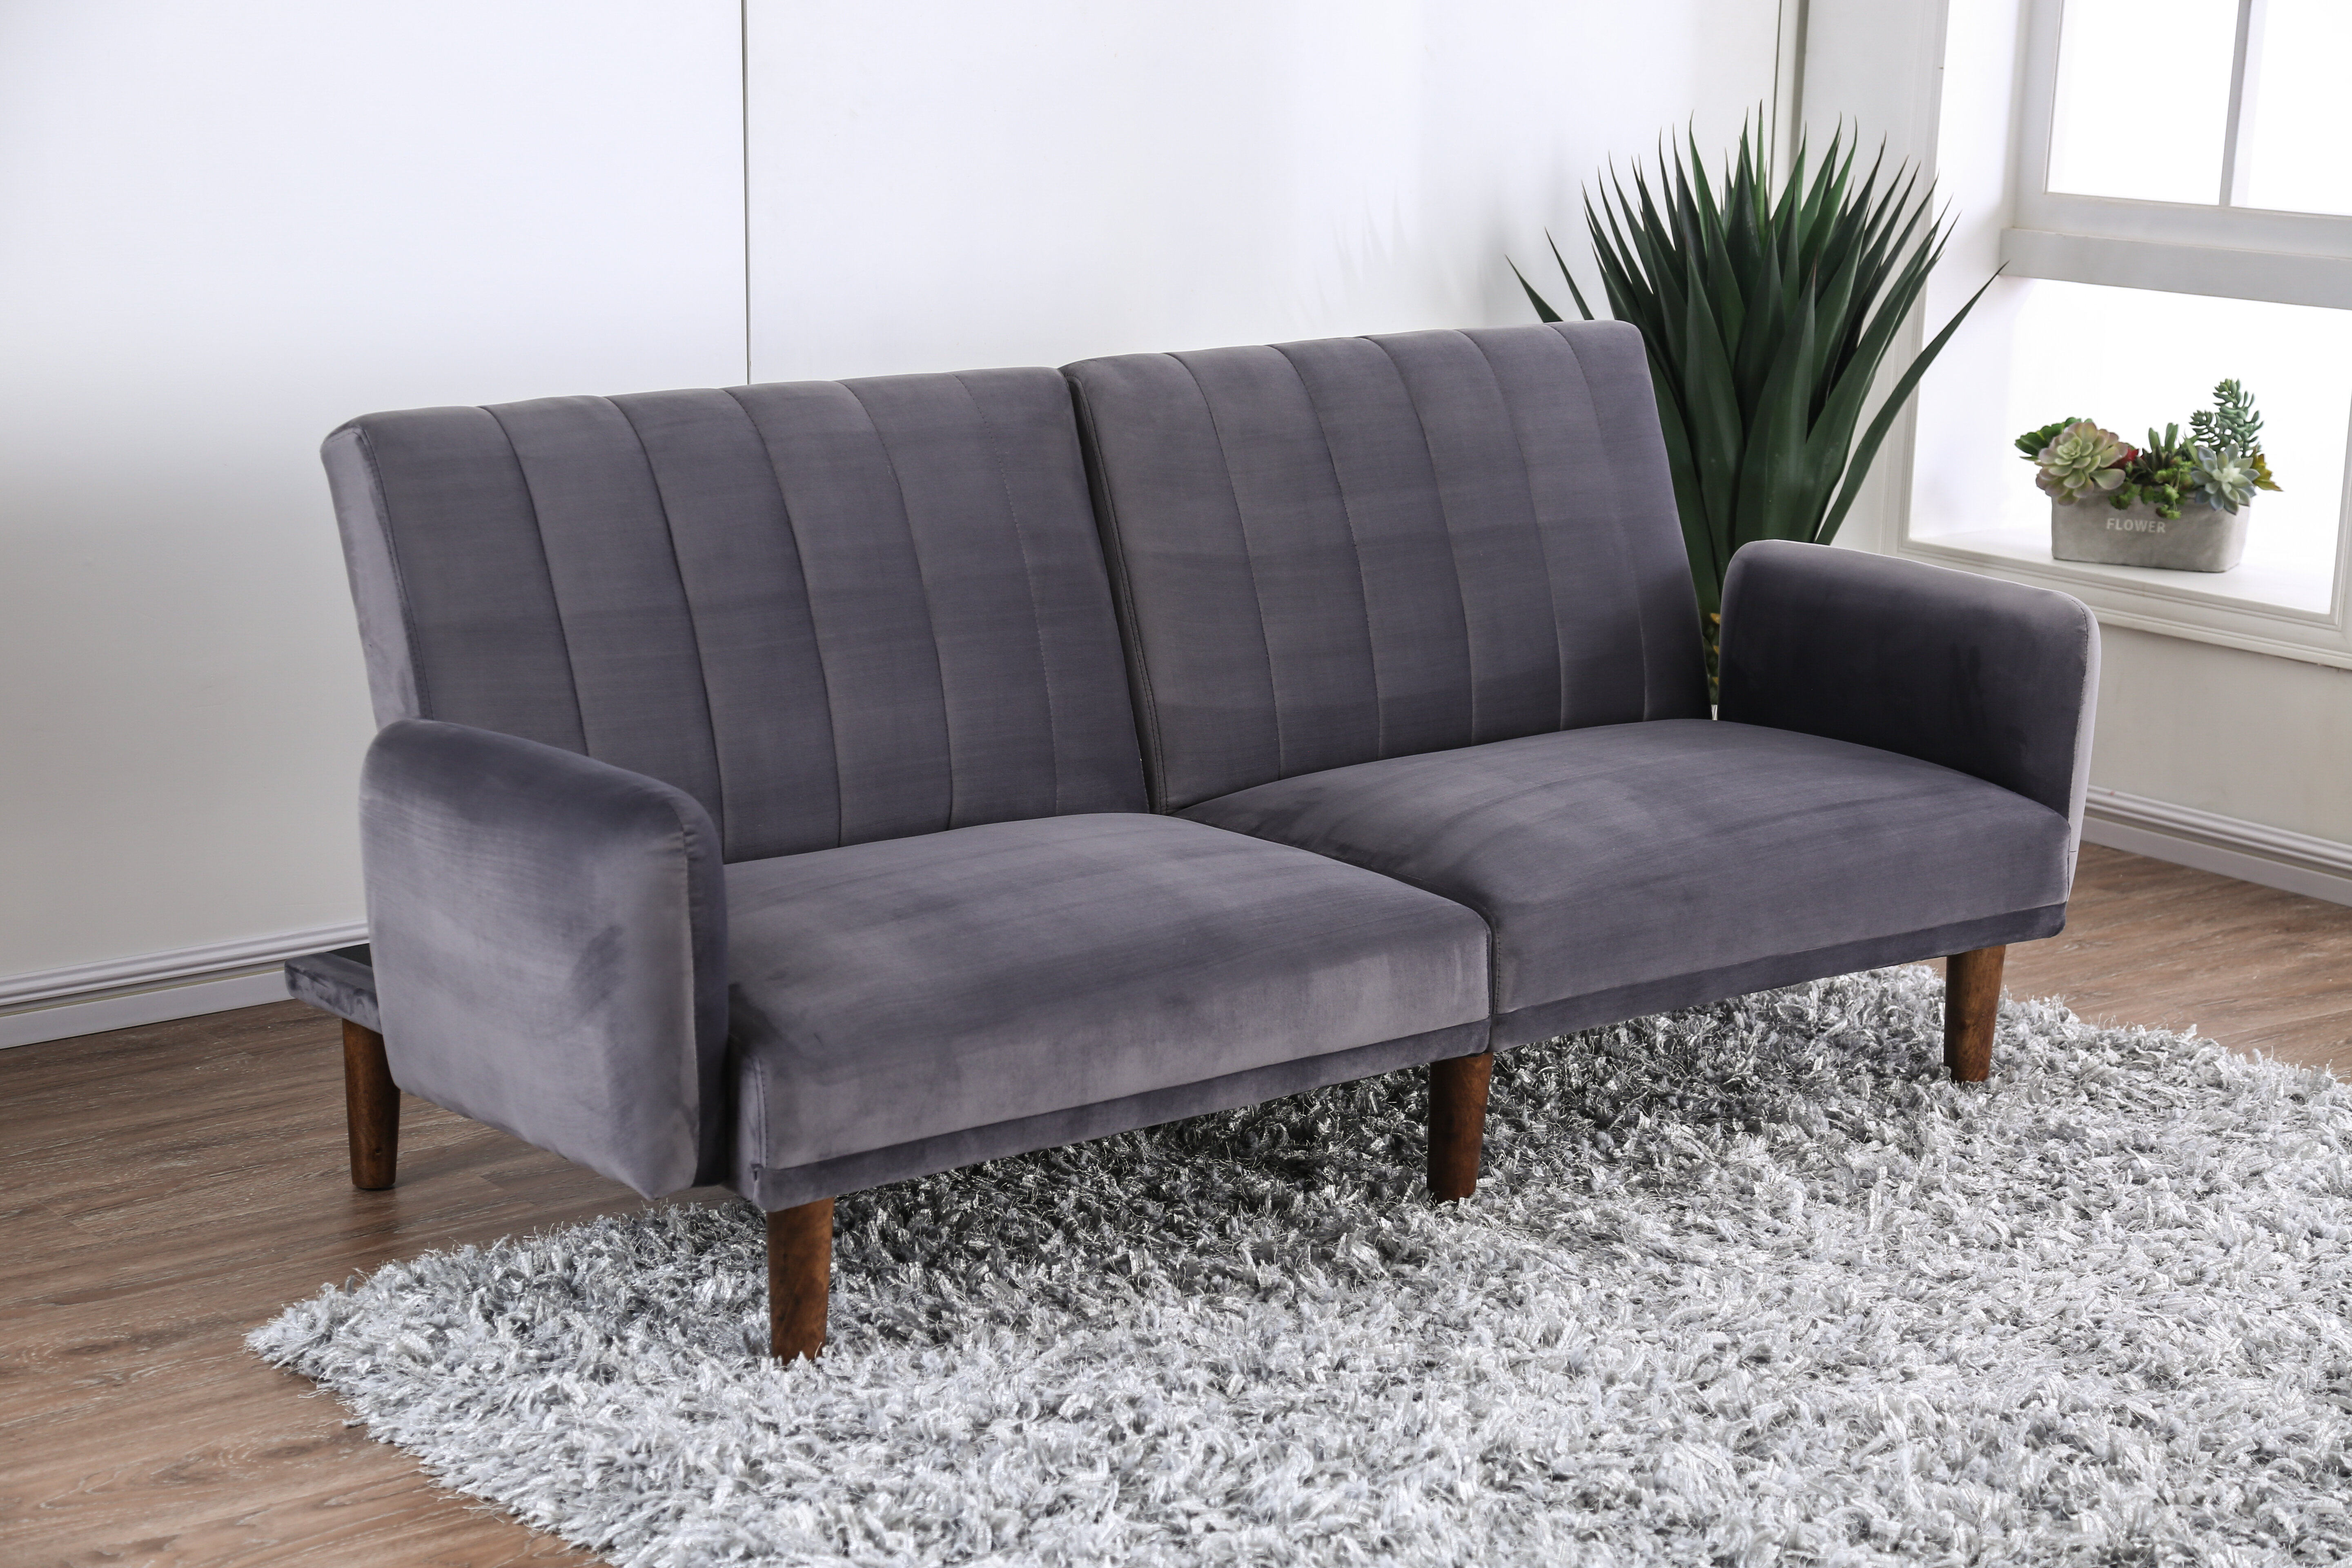 Fabulous Pate Twin Tufted Back Convertible Sofa Gmtry Best Dining Table And Chair Ideas Images Gmtryco